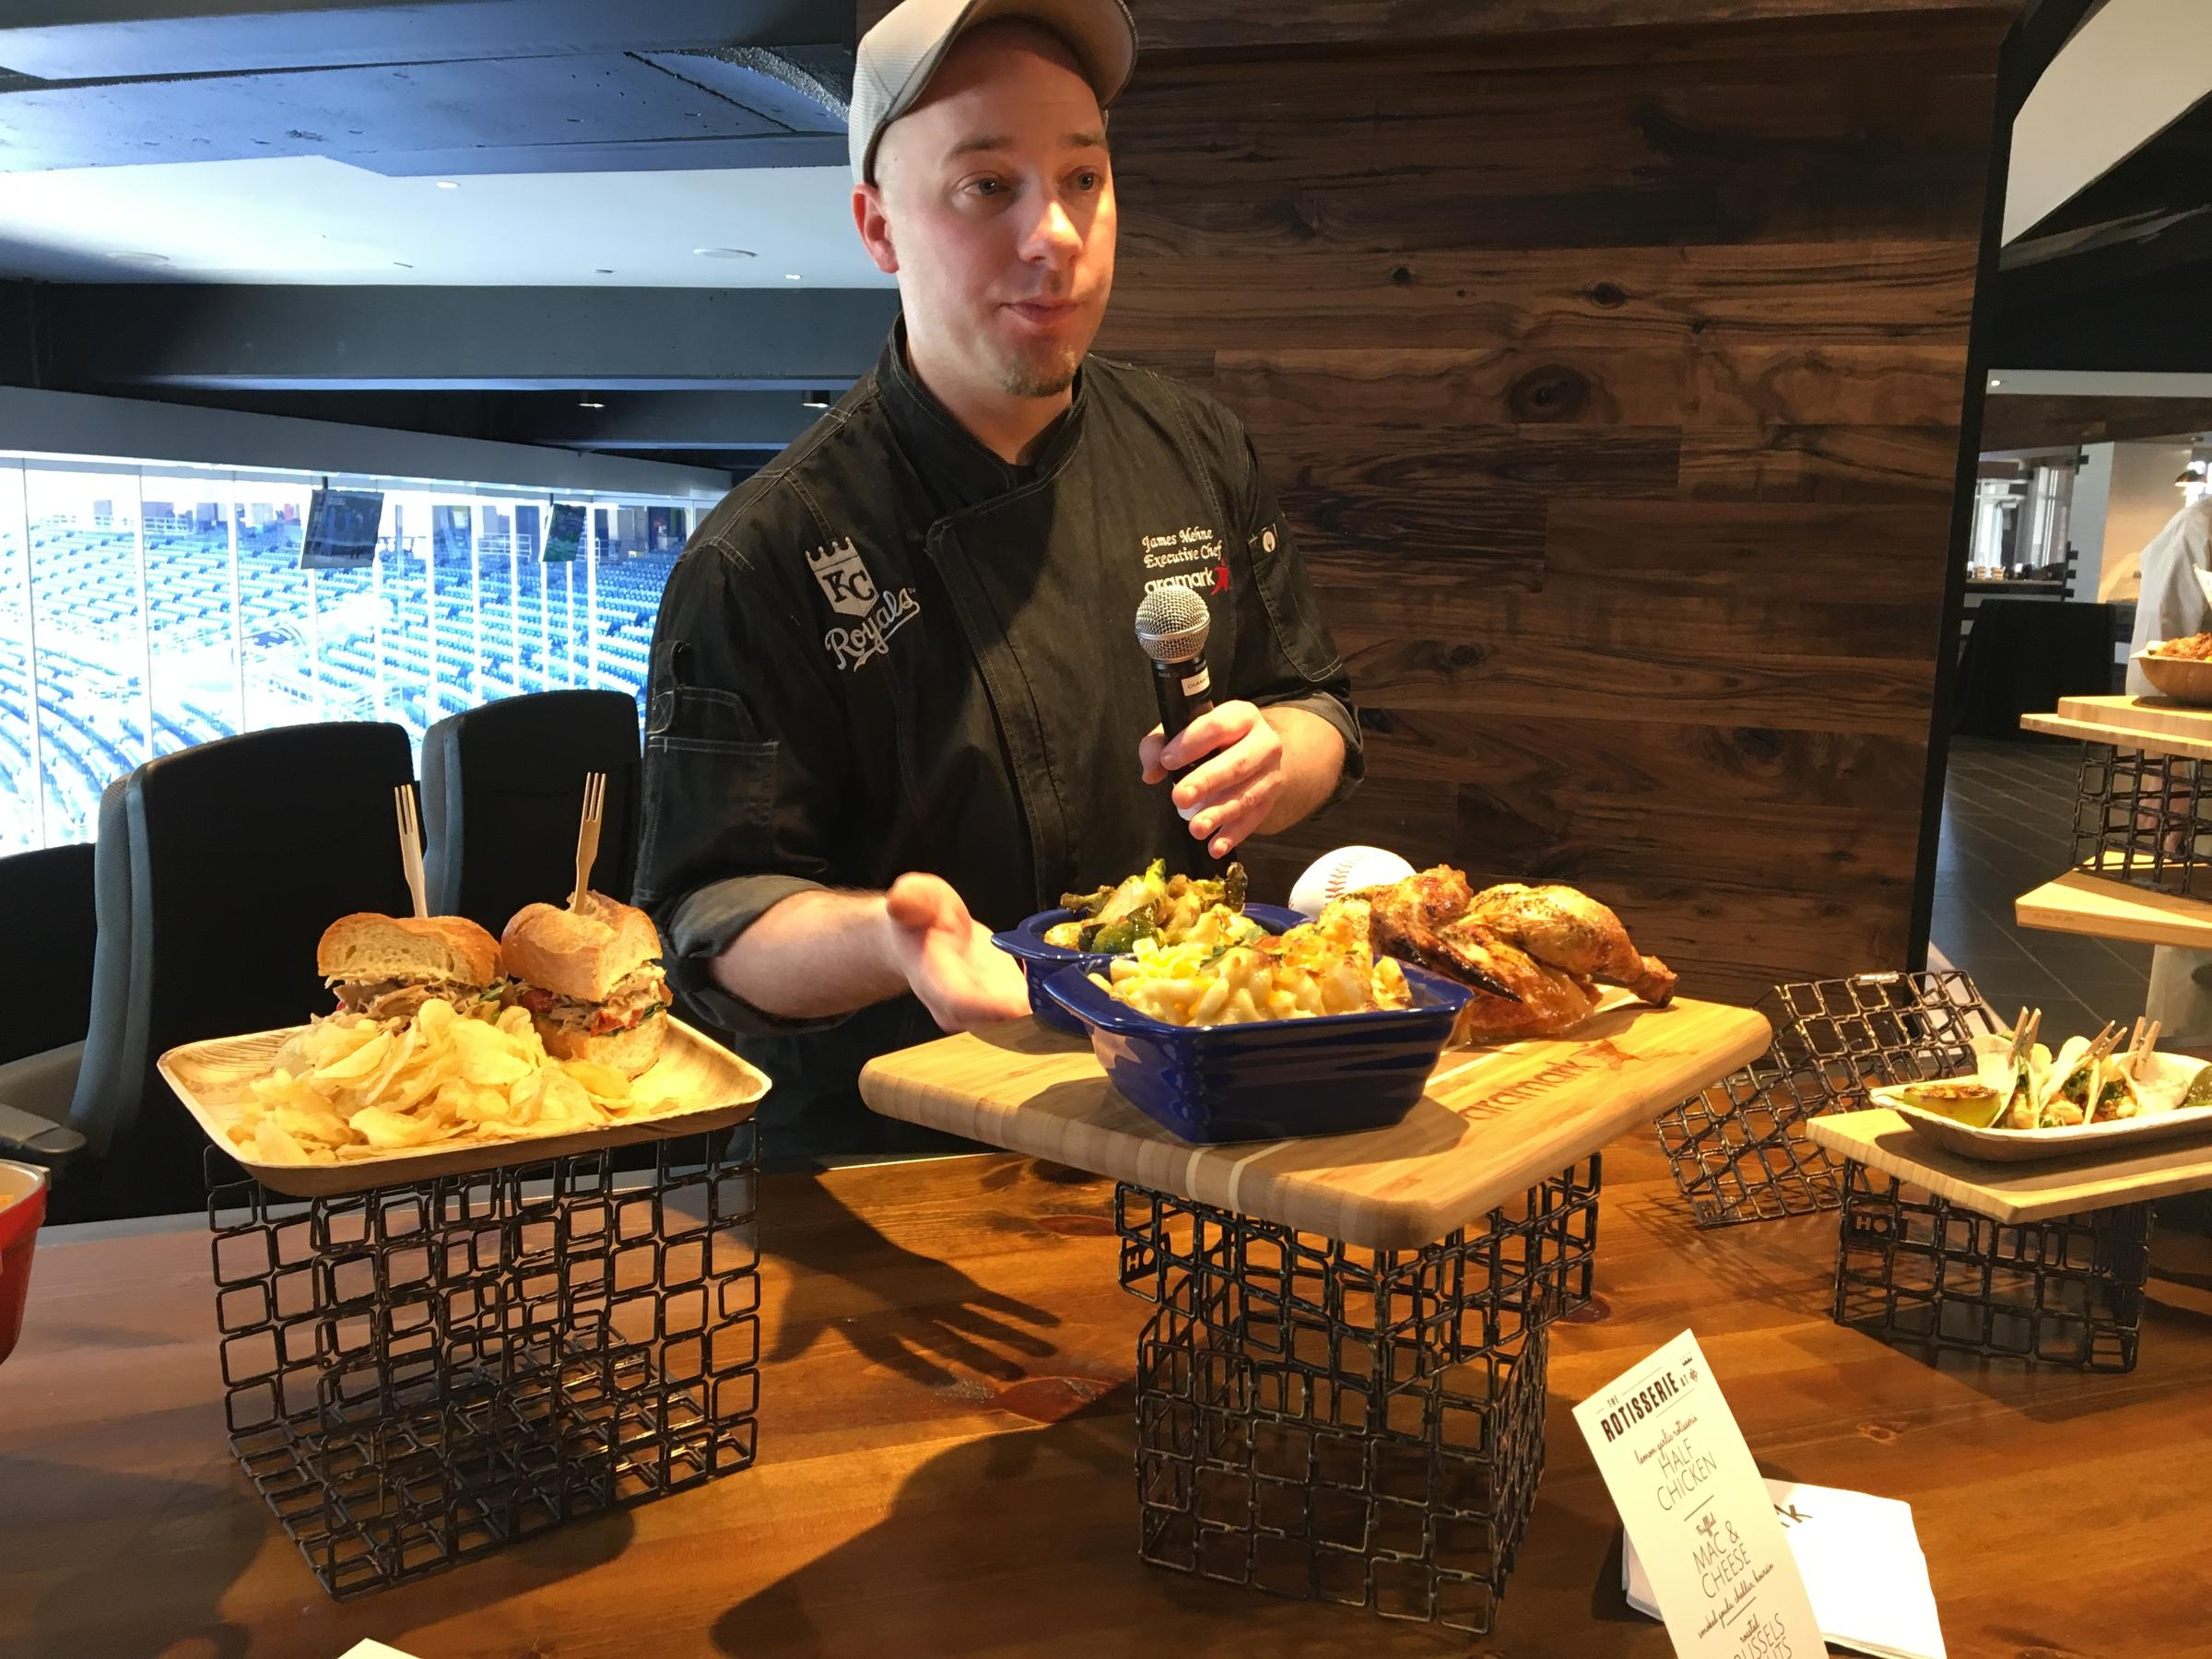 Aramark Executive Chef James Mehne shows off new food items like the truffle mac & cheese and lemon garlic rotisserie chicken during a tour of the renovated Diamond Club at Kauffman Stadium